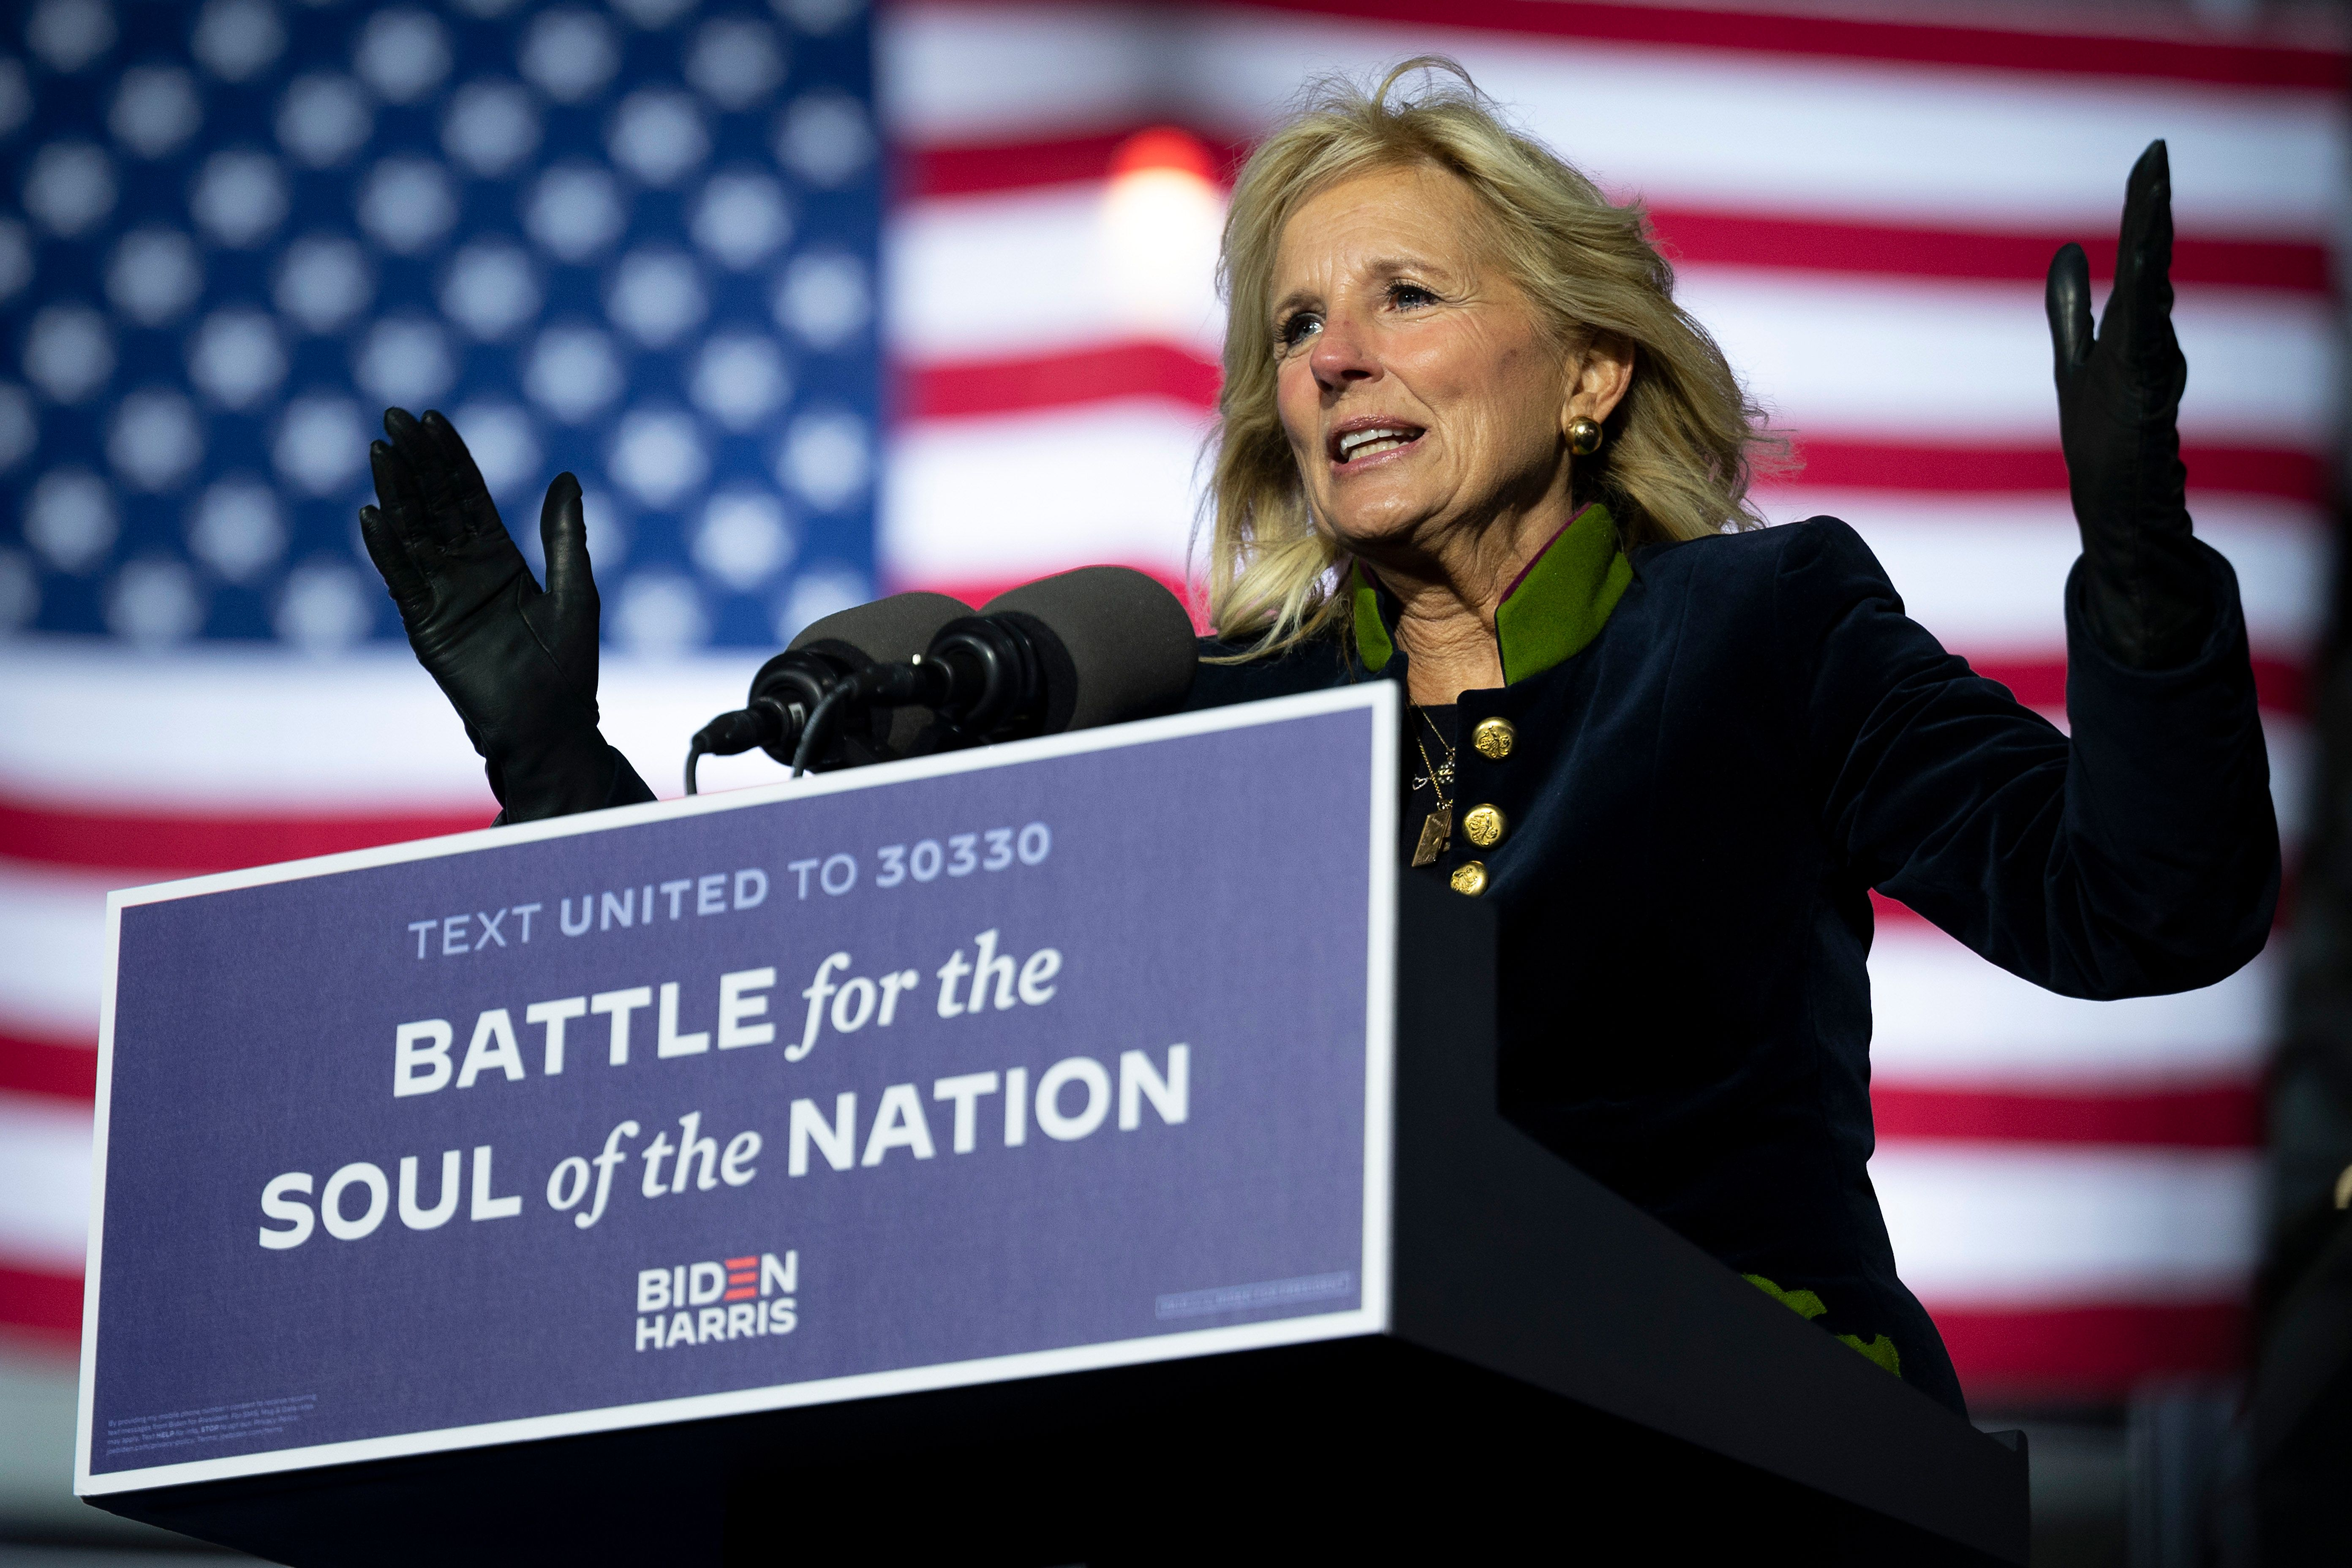 Biden, in a dark blue jacket with a green collar and gold buttons, speaks outdoors in front of a US flag. She is lit by spotlight, and is gesturing broadly with her arms.